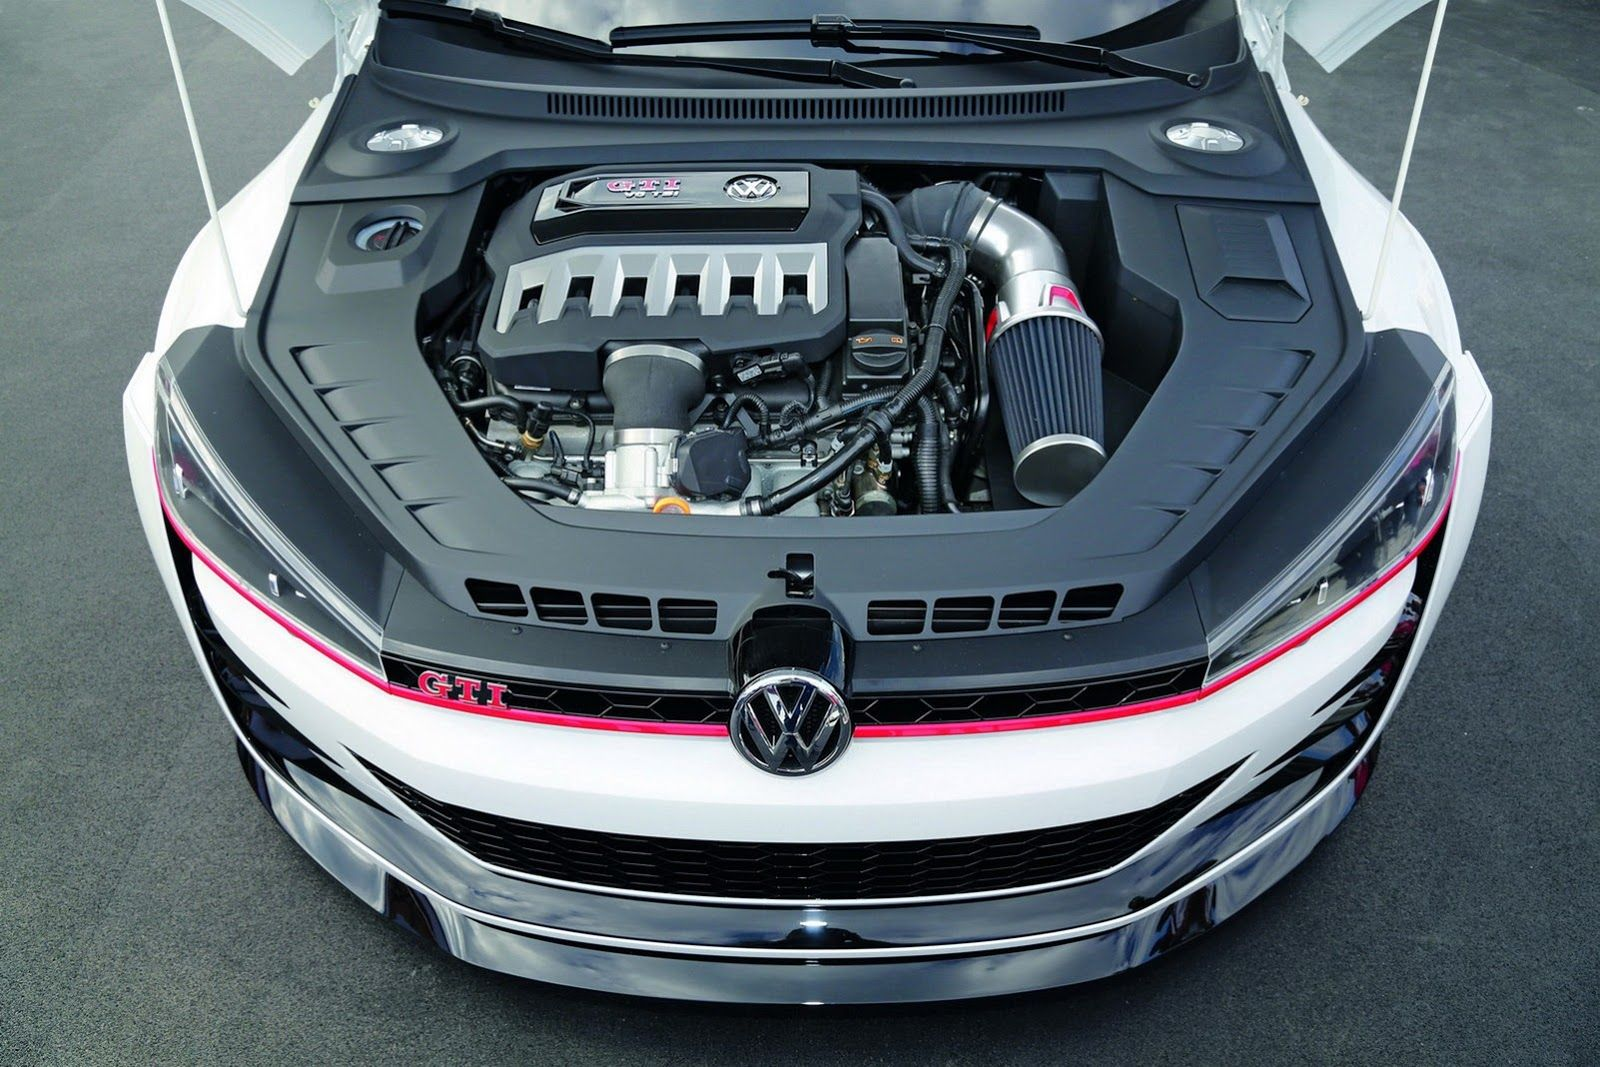 2014 volkswagen design vision gti engine 3 0l v6 biturbo 503 hp 560 nm 300 km